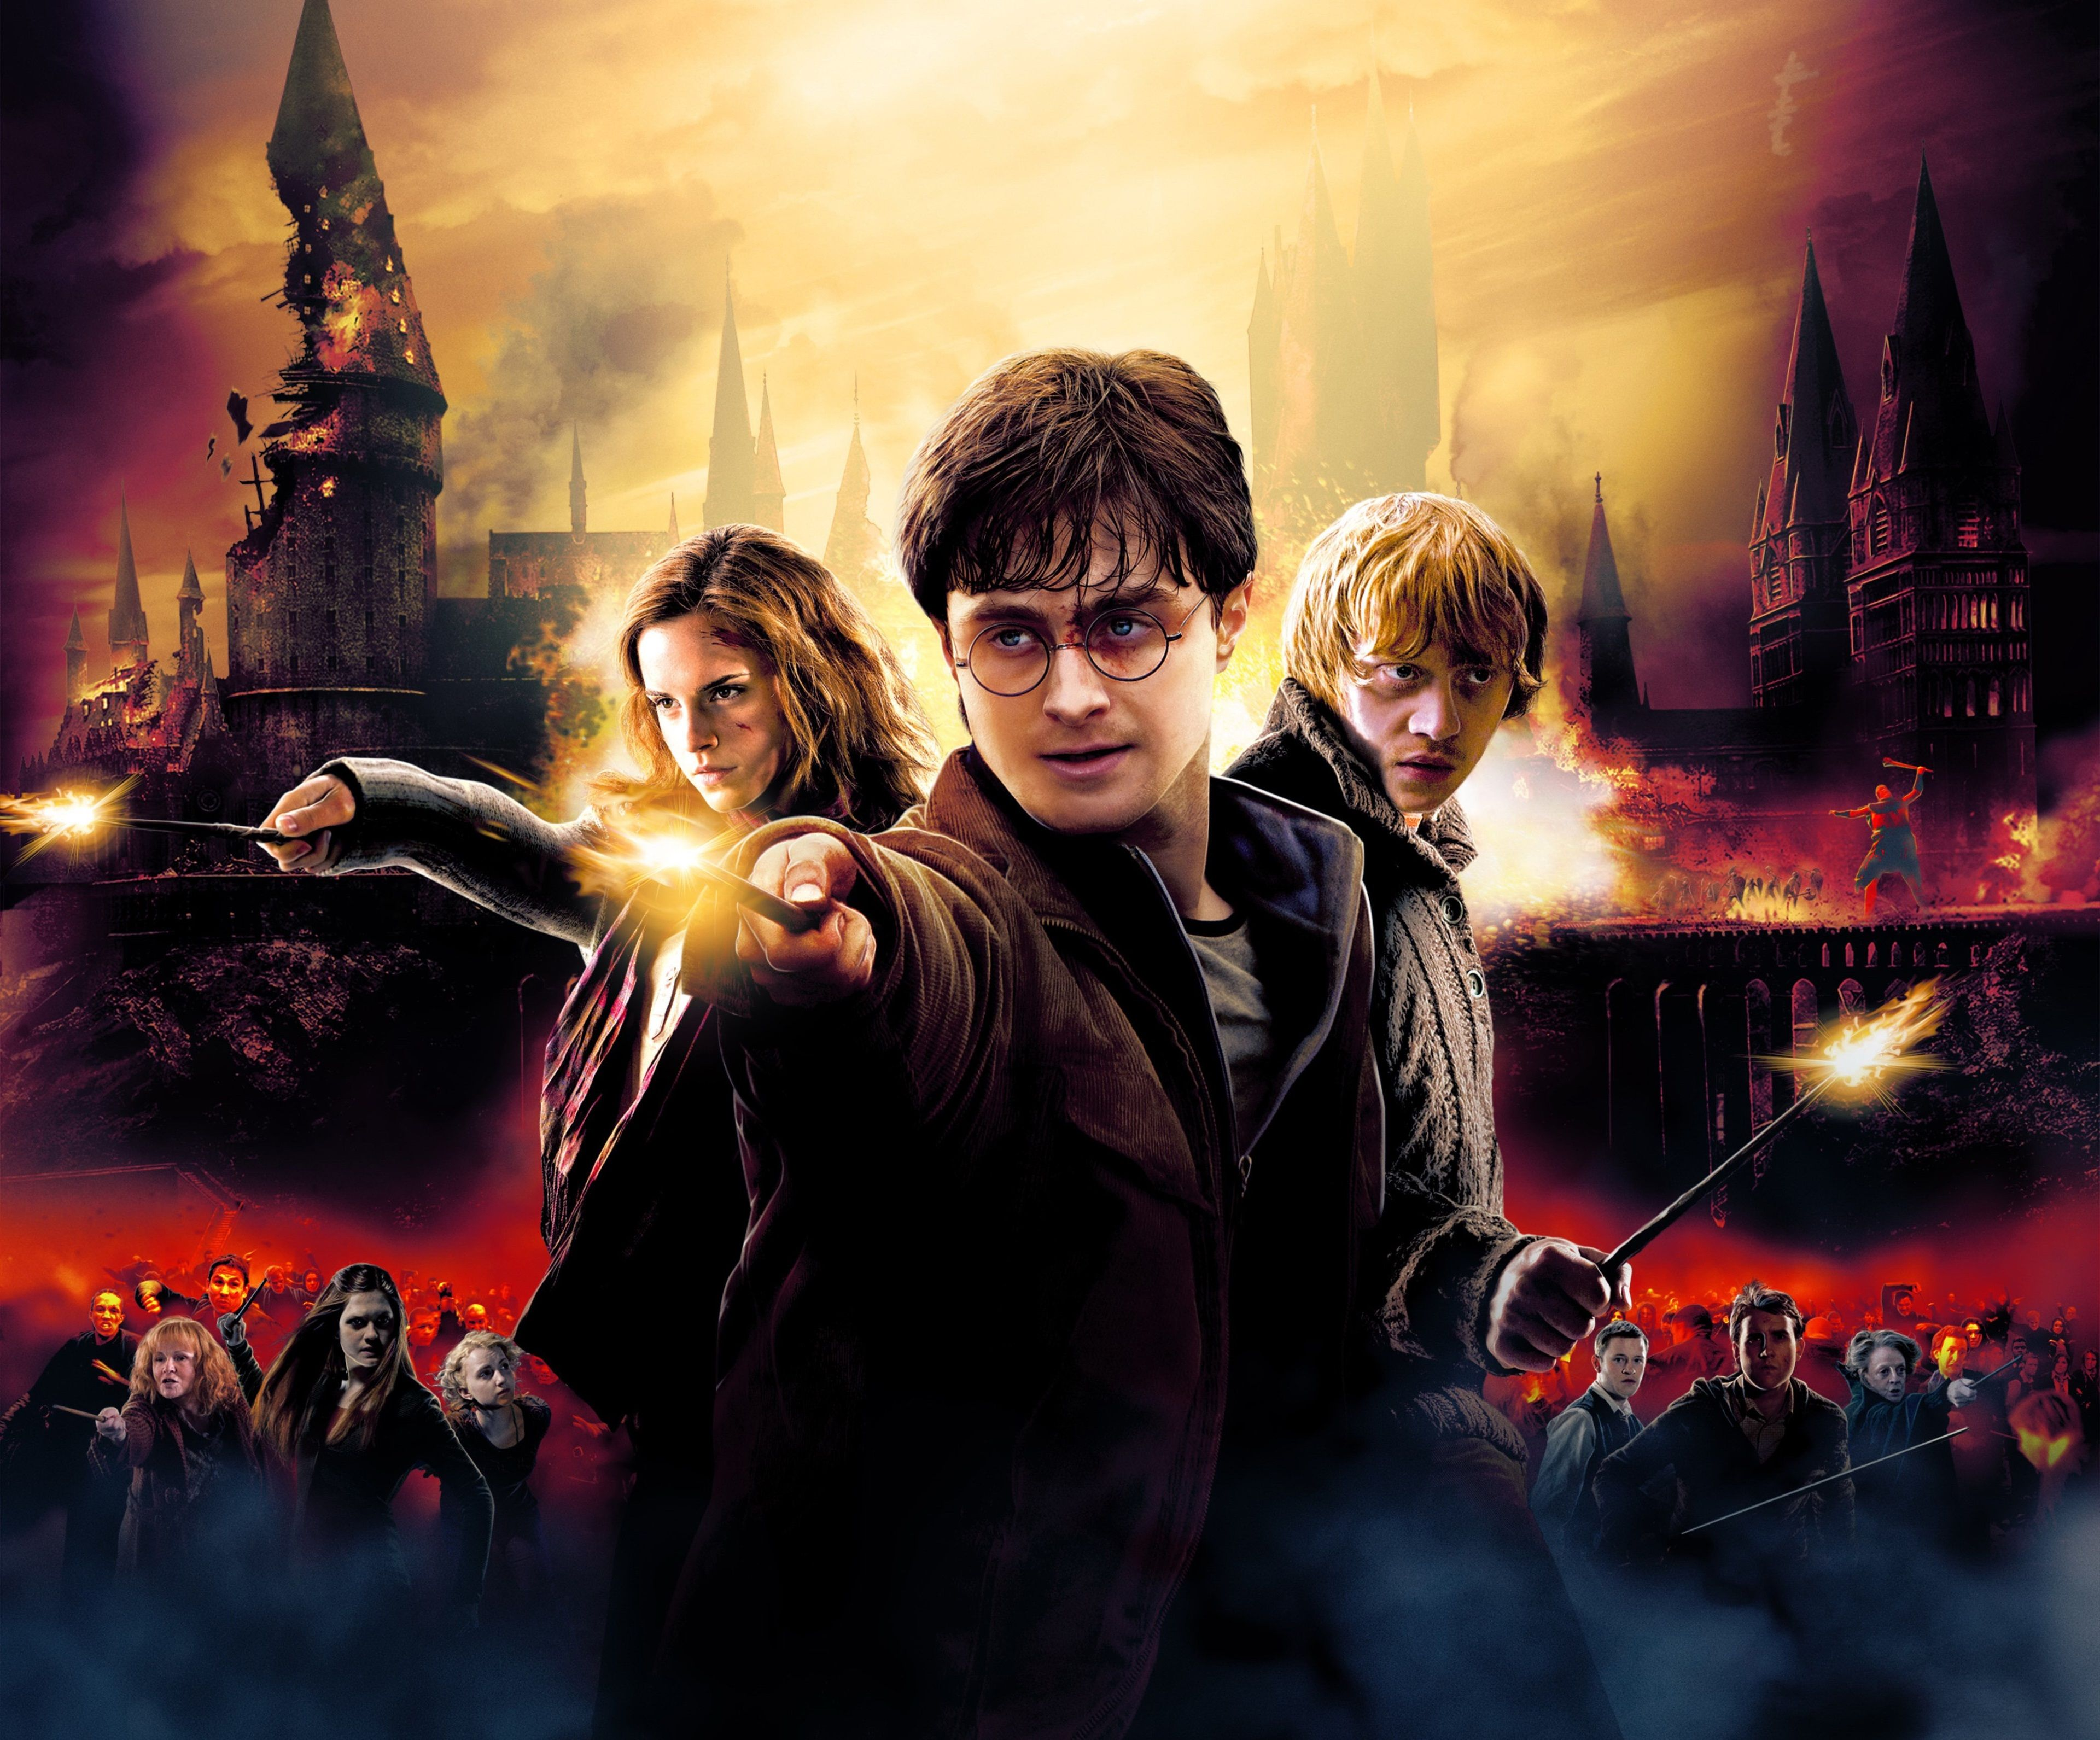 3840x3182 2636980 3840x3182 harry potter and the deathly hallows 4k ...